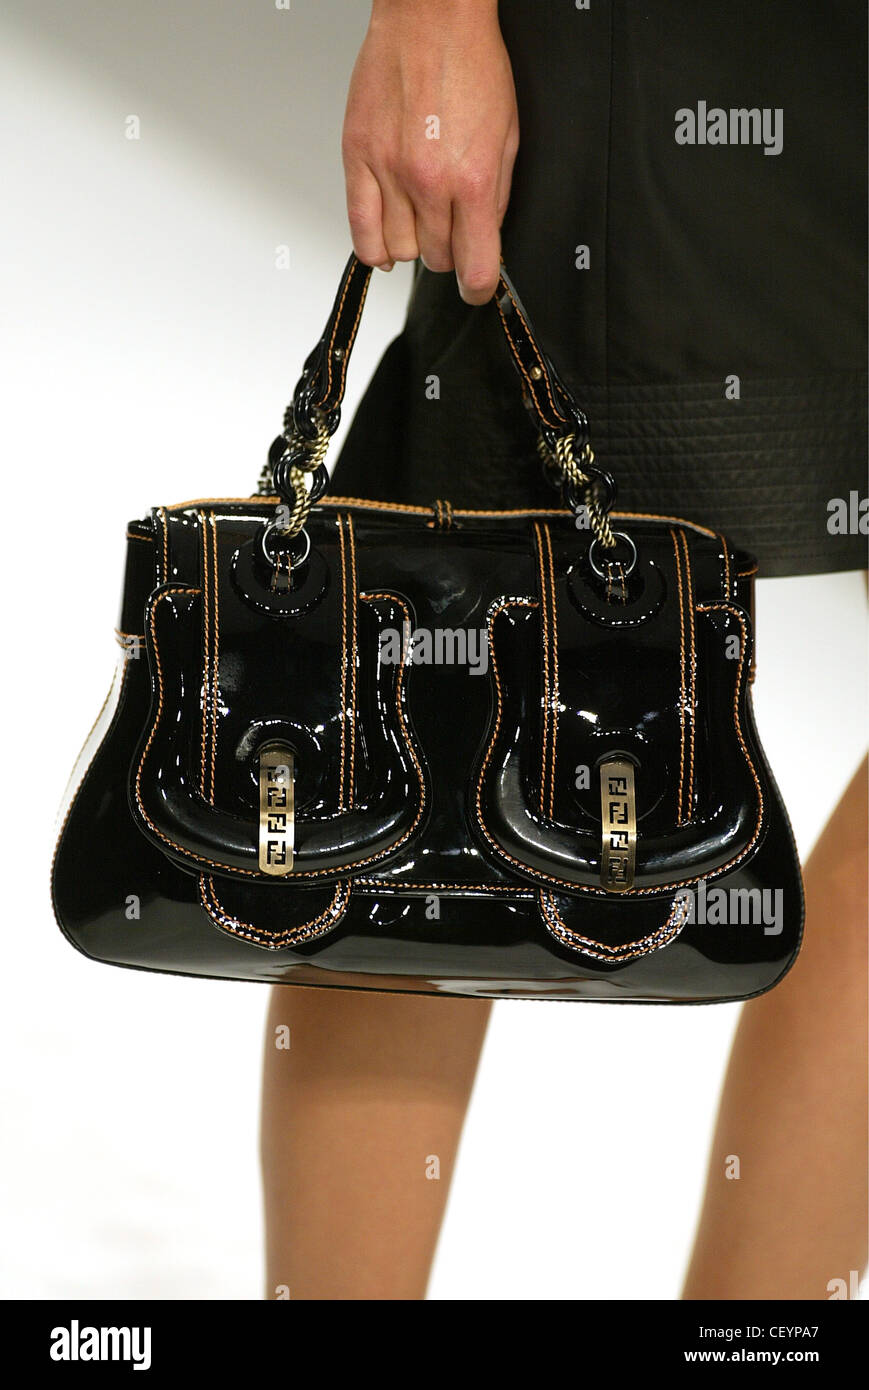 3f40ca4fadd0 Fendi Milan Ready to Wear S S Cropped hand of model carrying black patent  leather handbag -